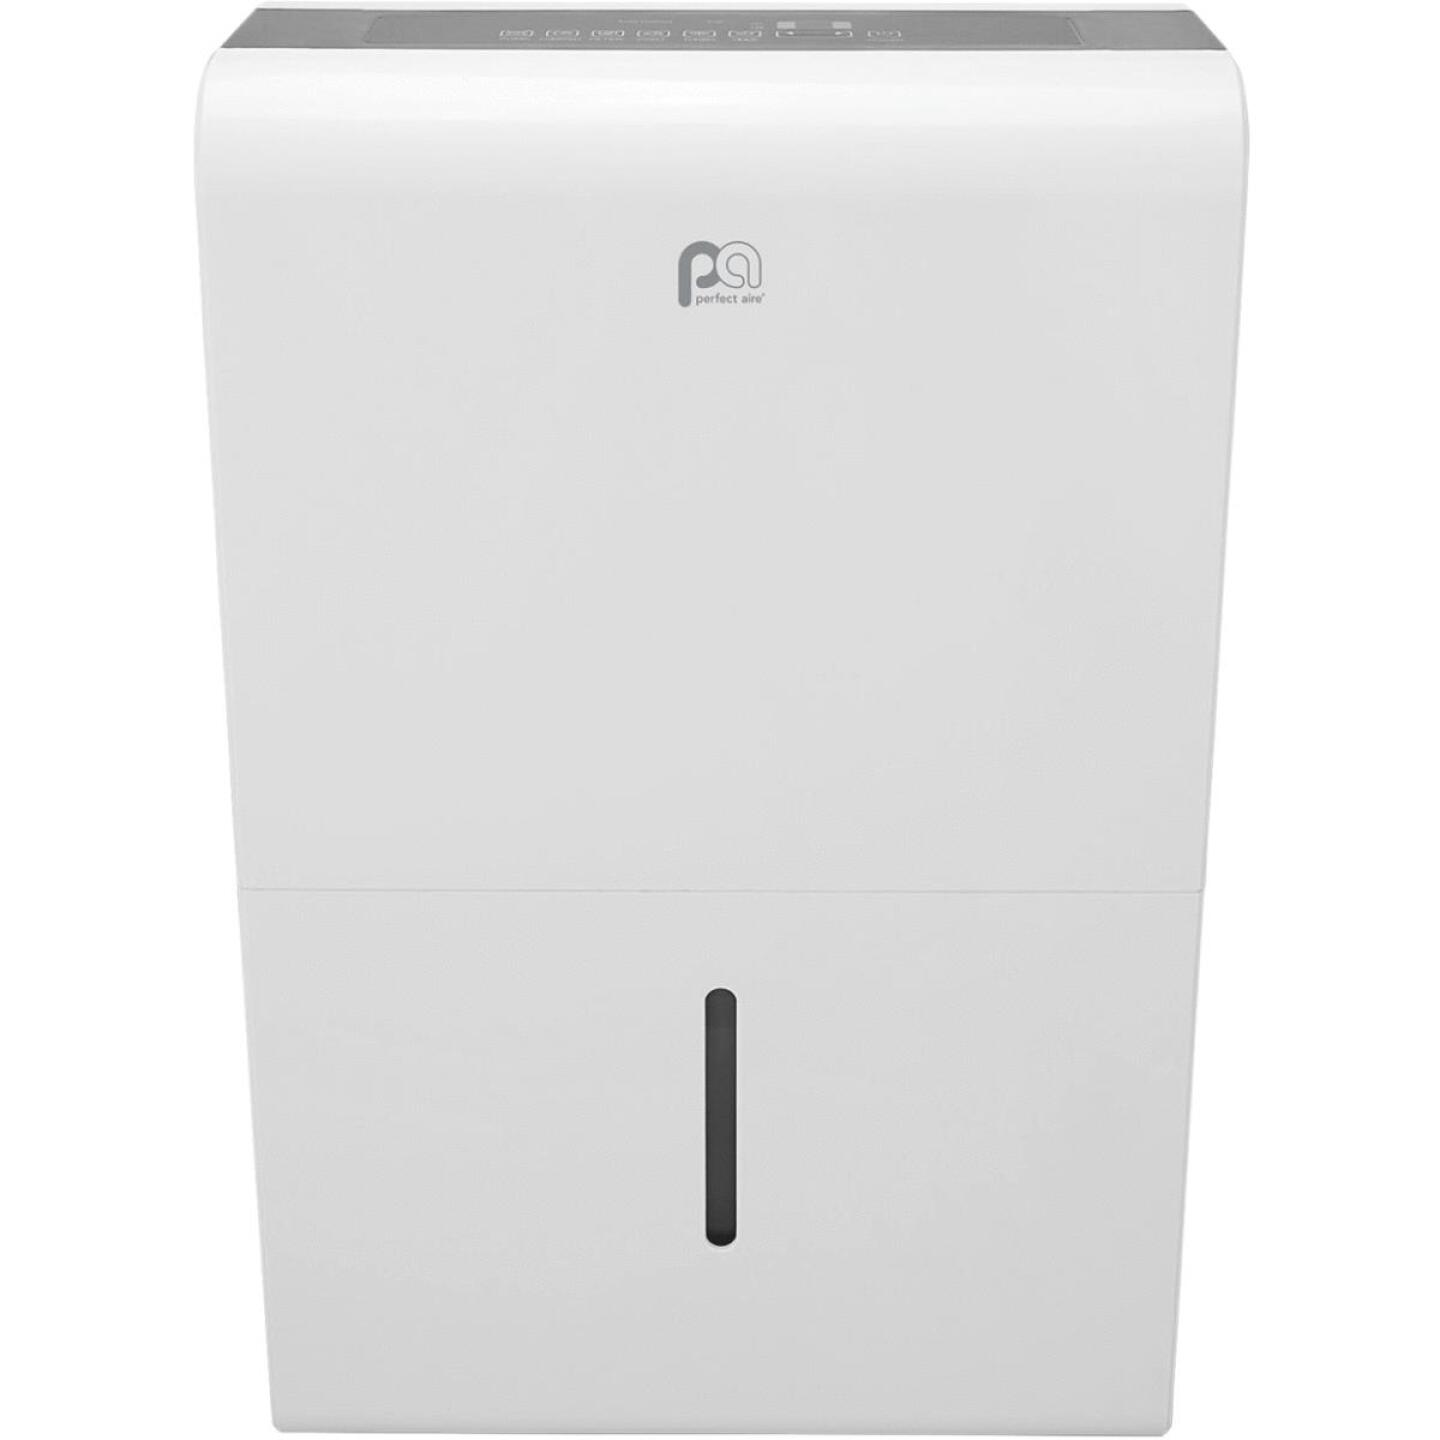 Perfect Aire 35 Pt.Day 2-Speed Flat Panel Dehumidifier Image 4